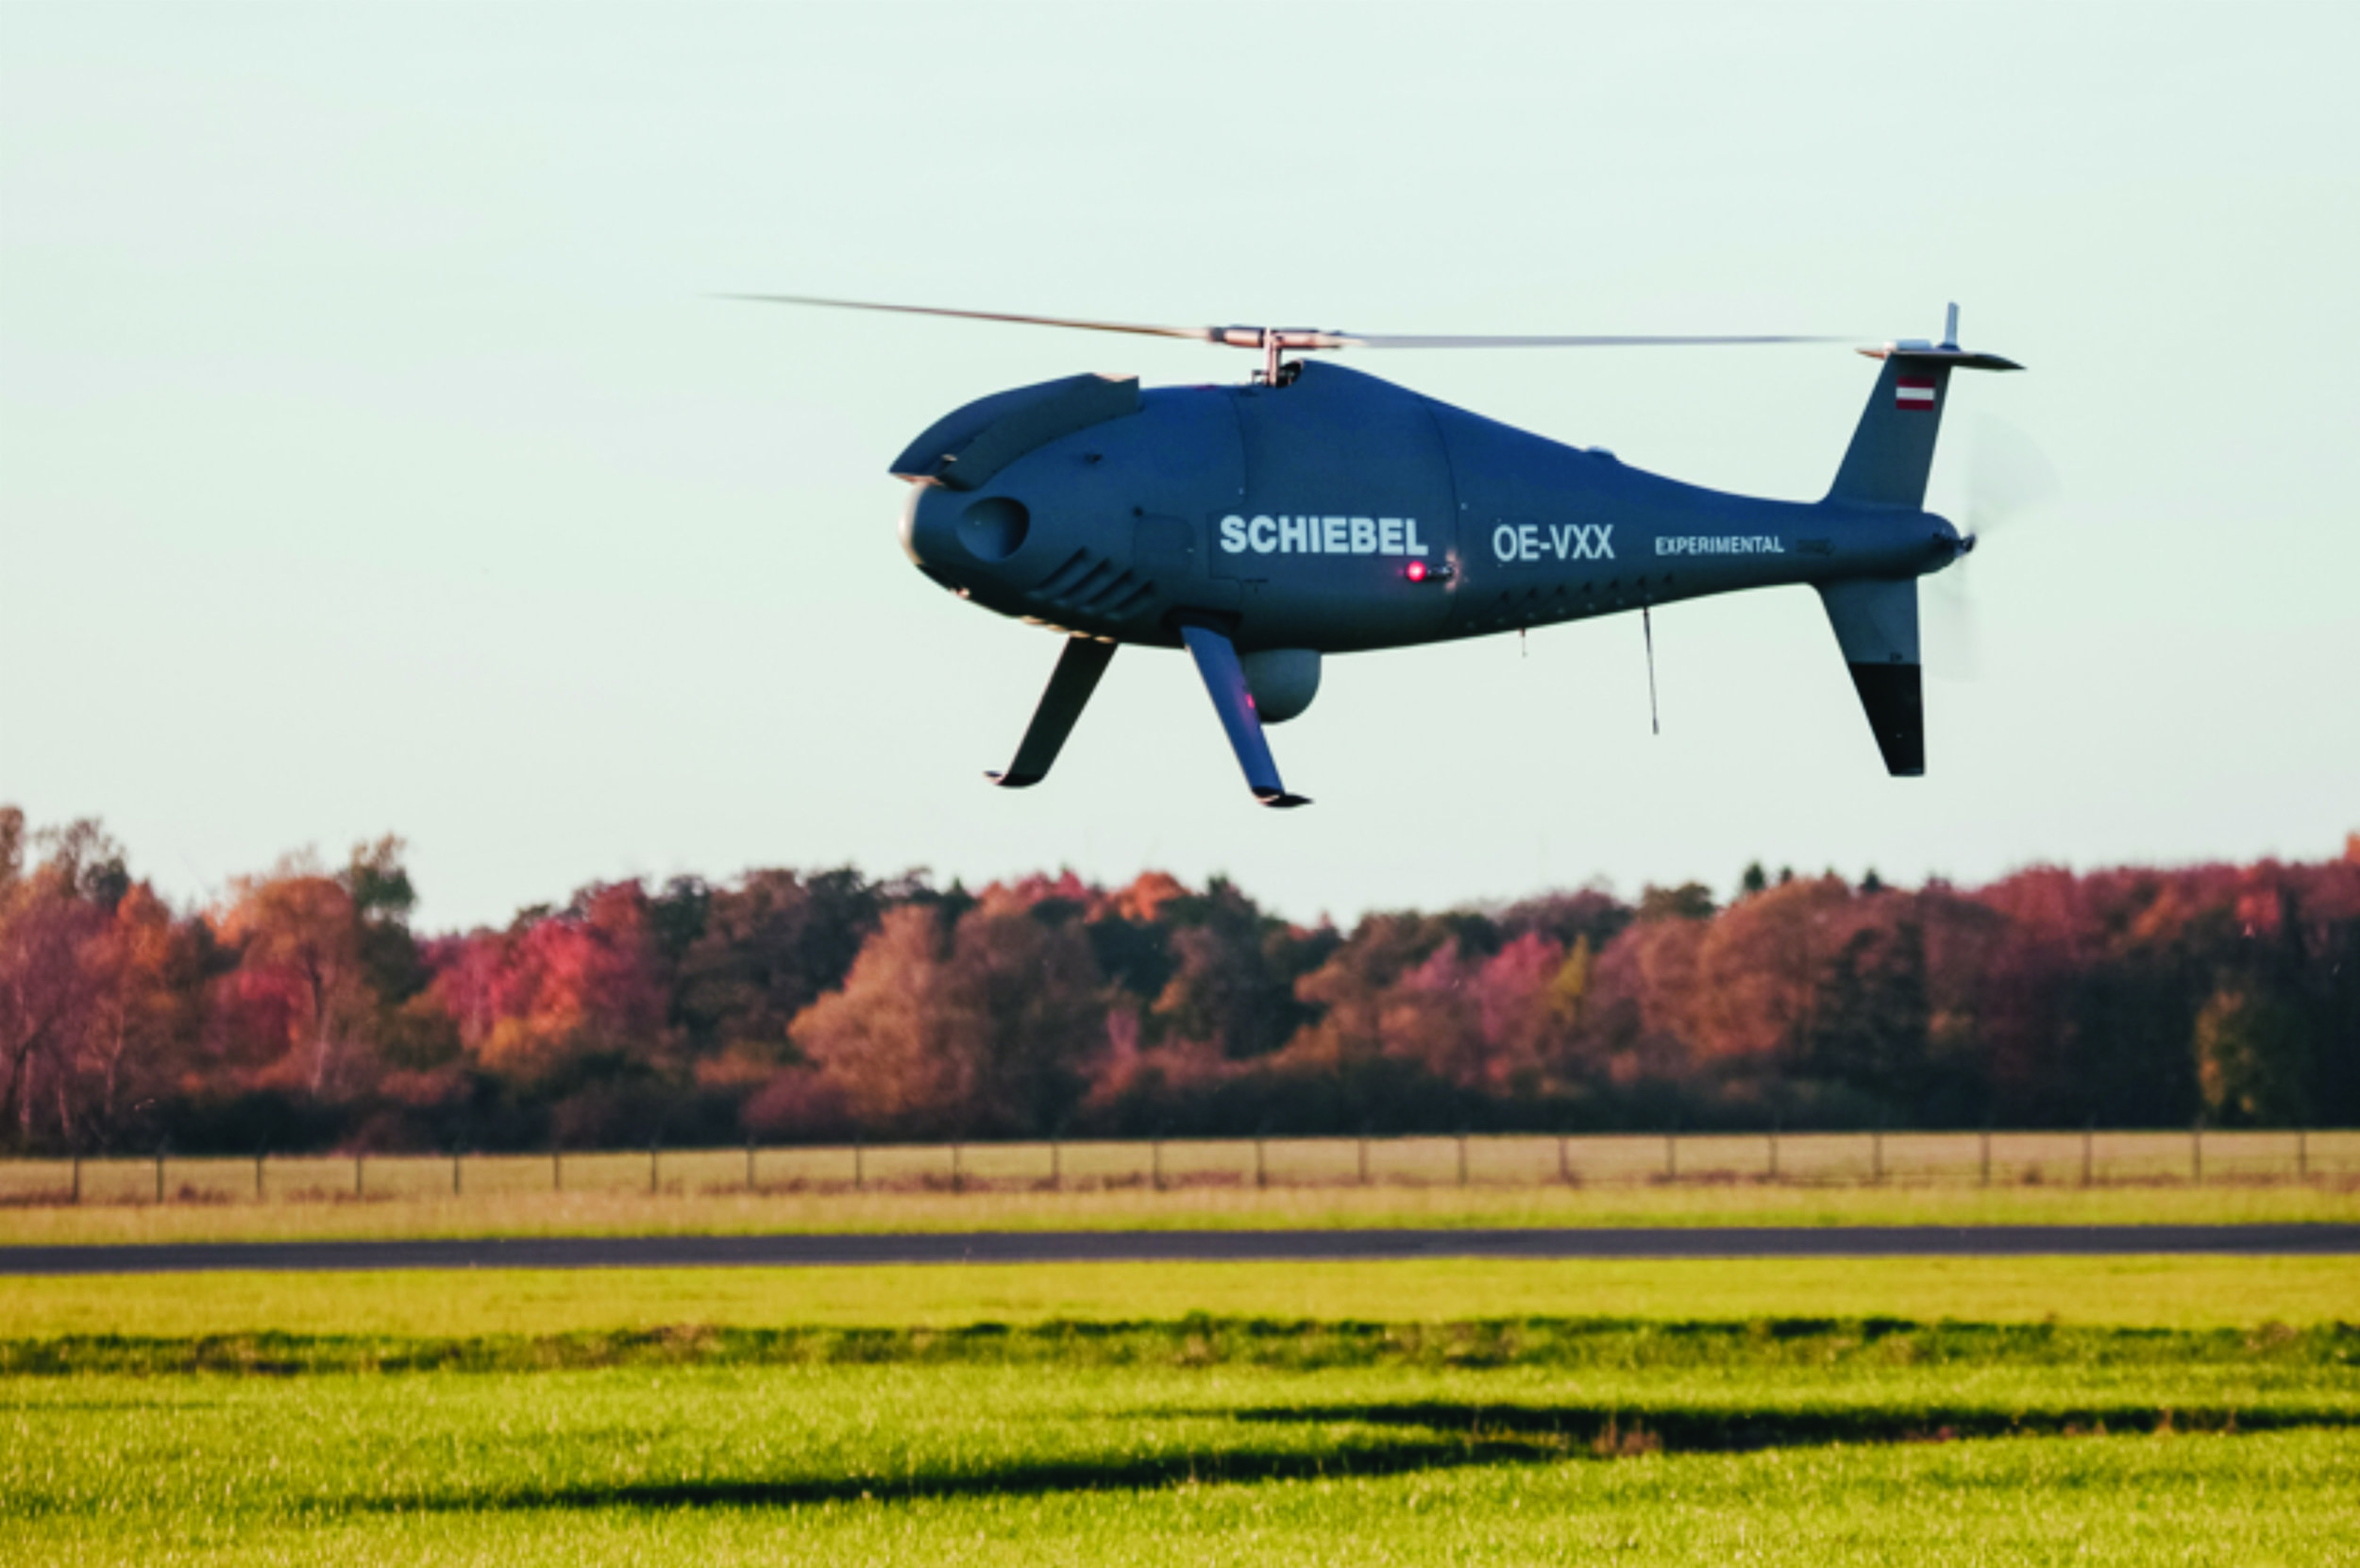 MDA has signed a contract with an unnamed international customer for the provision of turnkey, unmanned aircraft system surveillance services, which will include the use of a fleet of Schiebel CAMCOPTER S-100 rotary-wing unmanned aircraft. (PHOTO COURTESY OF SCHIEBEL)